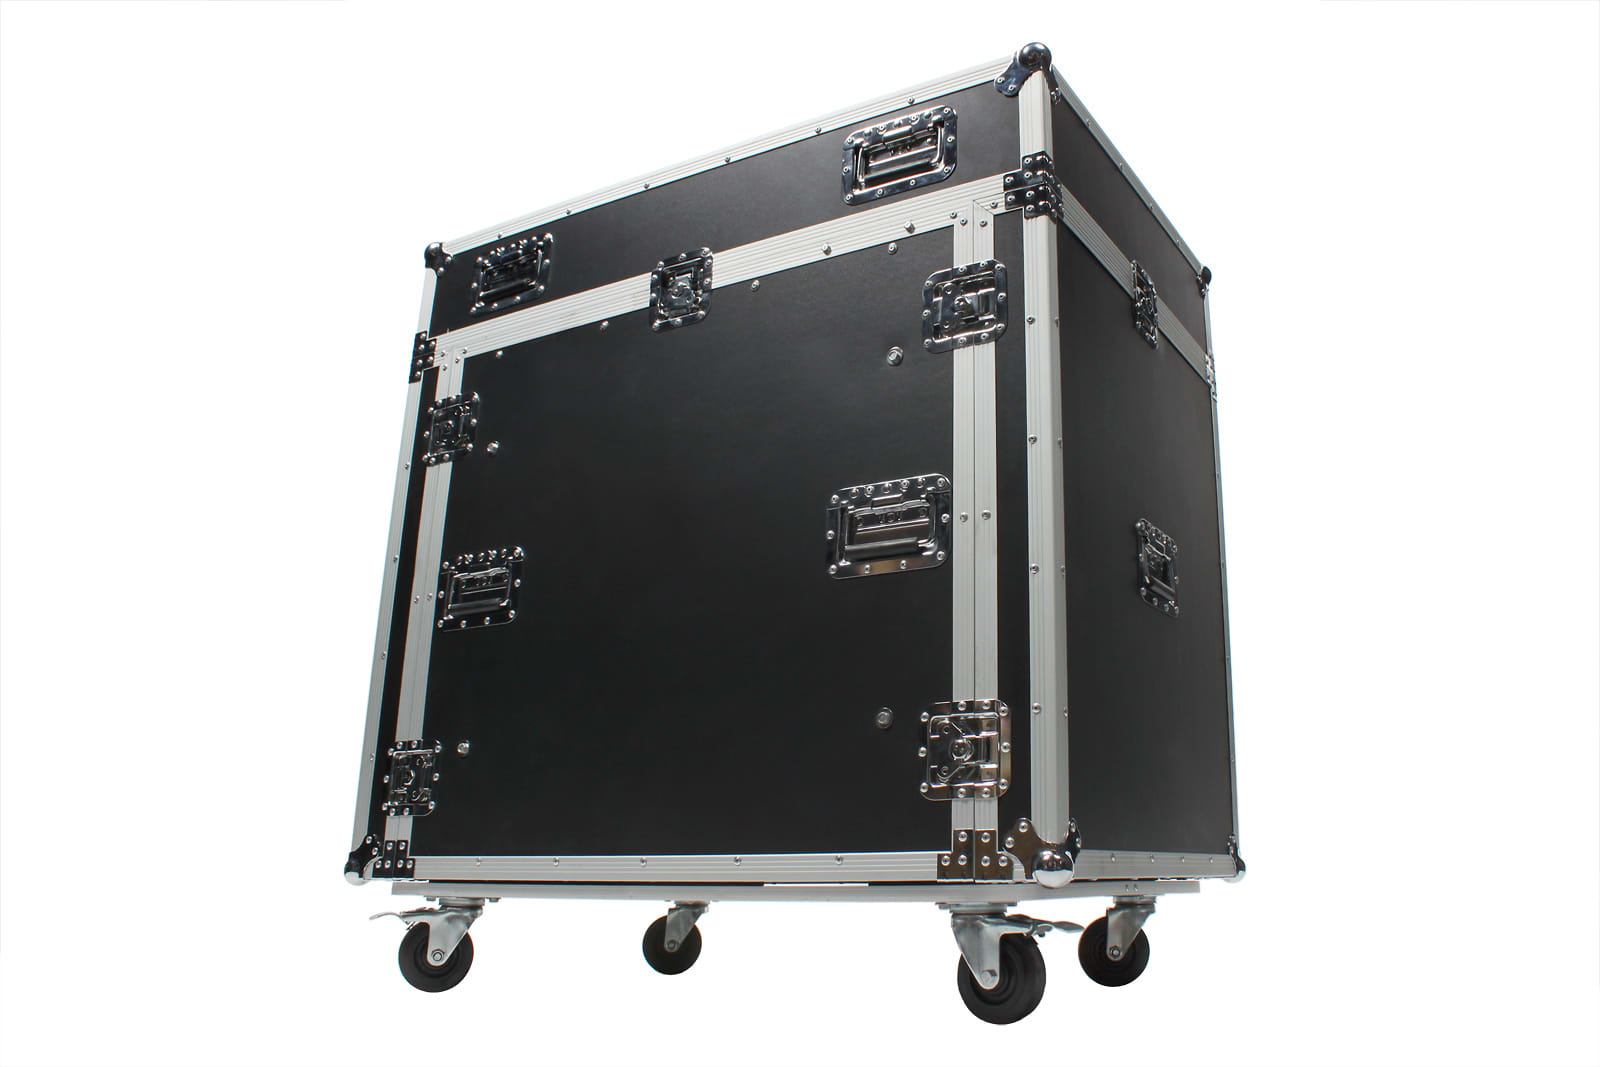 OSP PRE-2442-COMBO ATA Combo Case for PreSonus 2442 with Rack Space and Doghouse